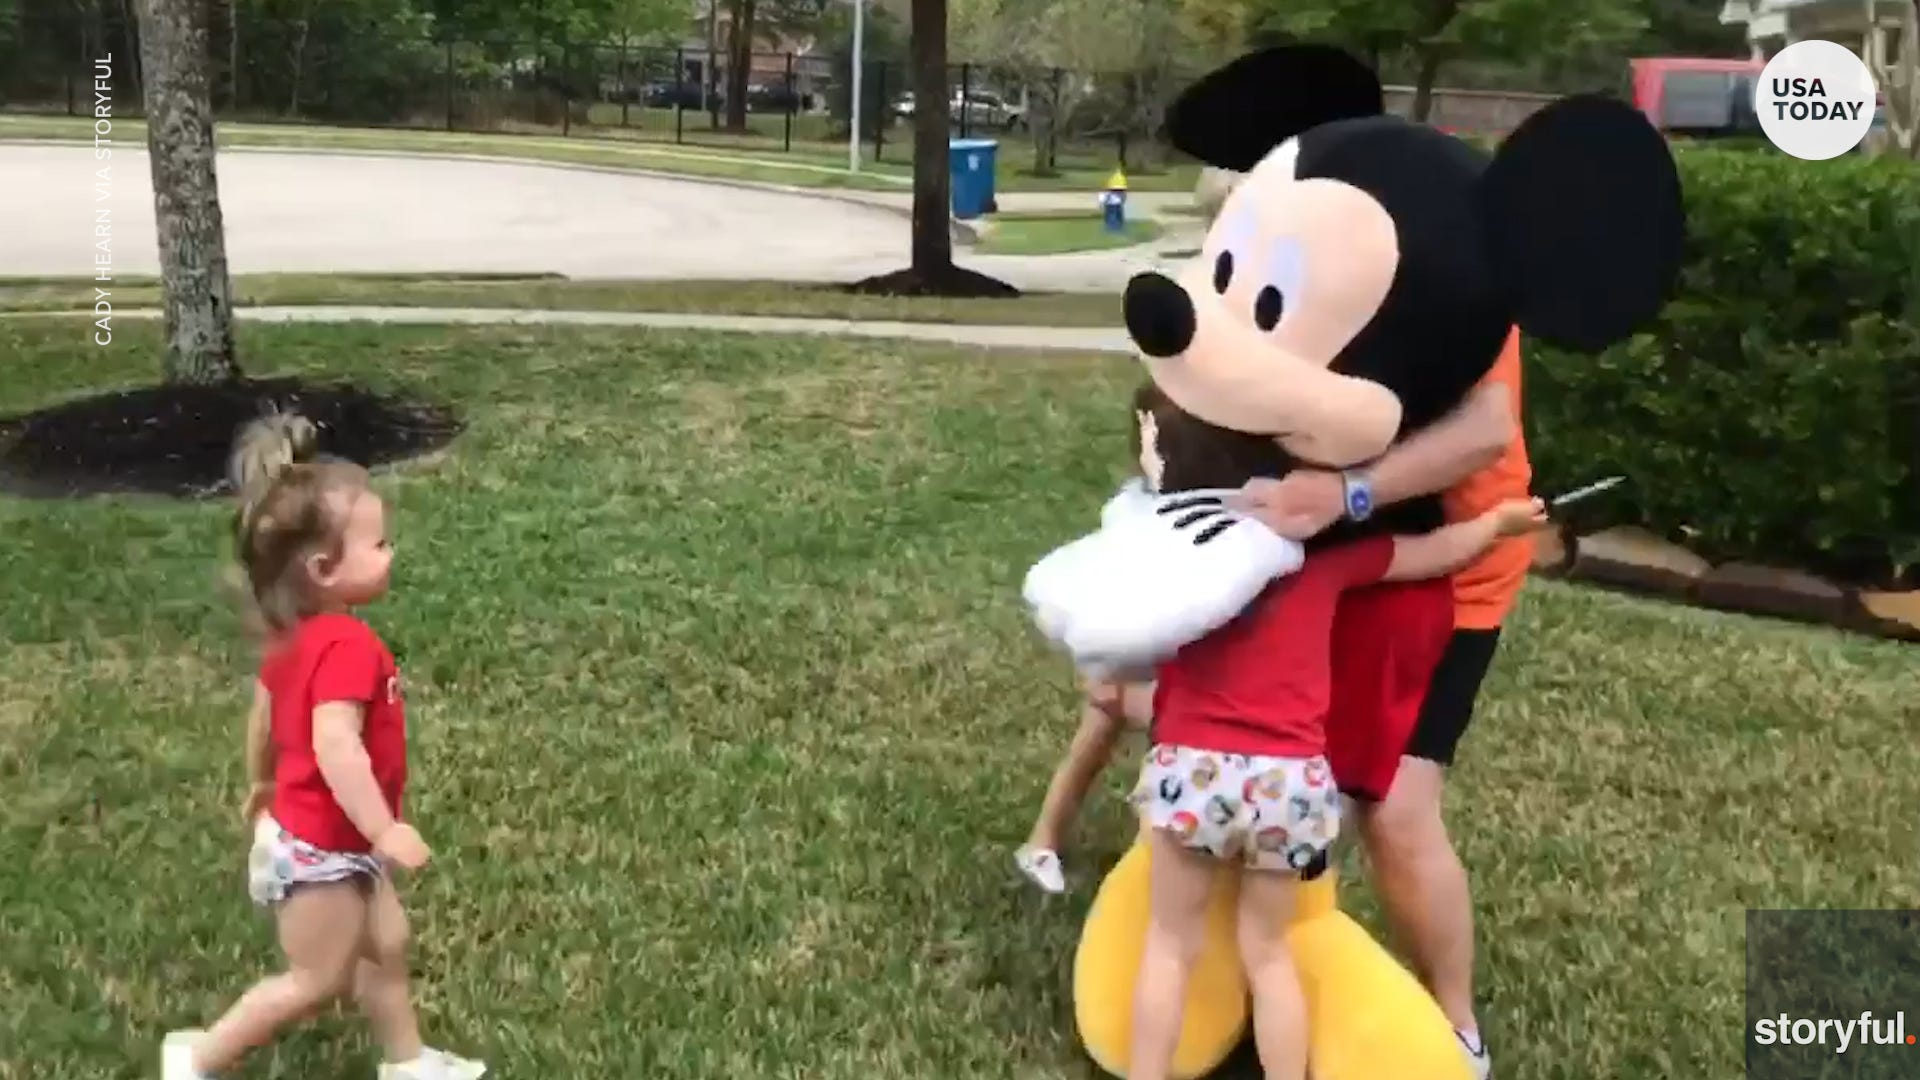 Family recreates trip to Disney after parks close due to coronavirus pandemic